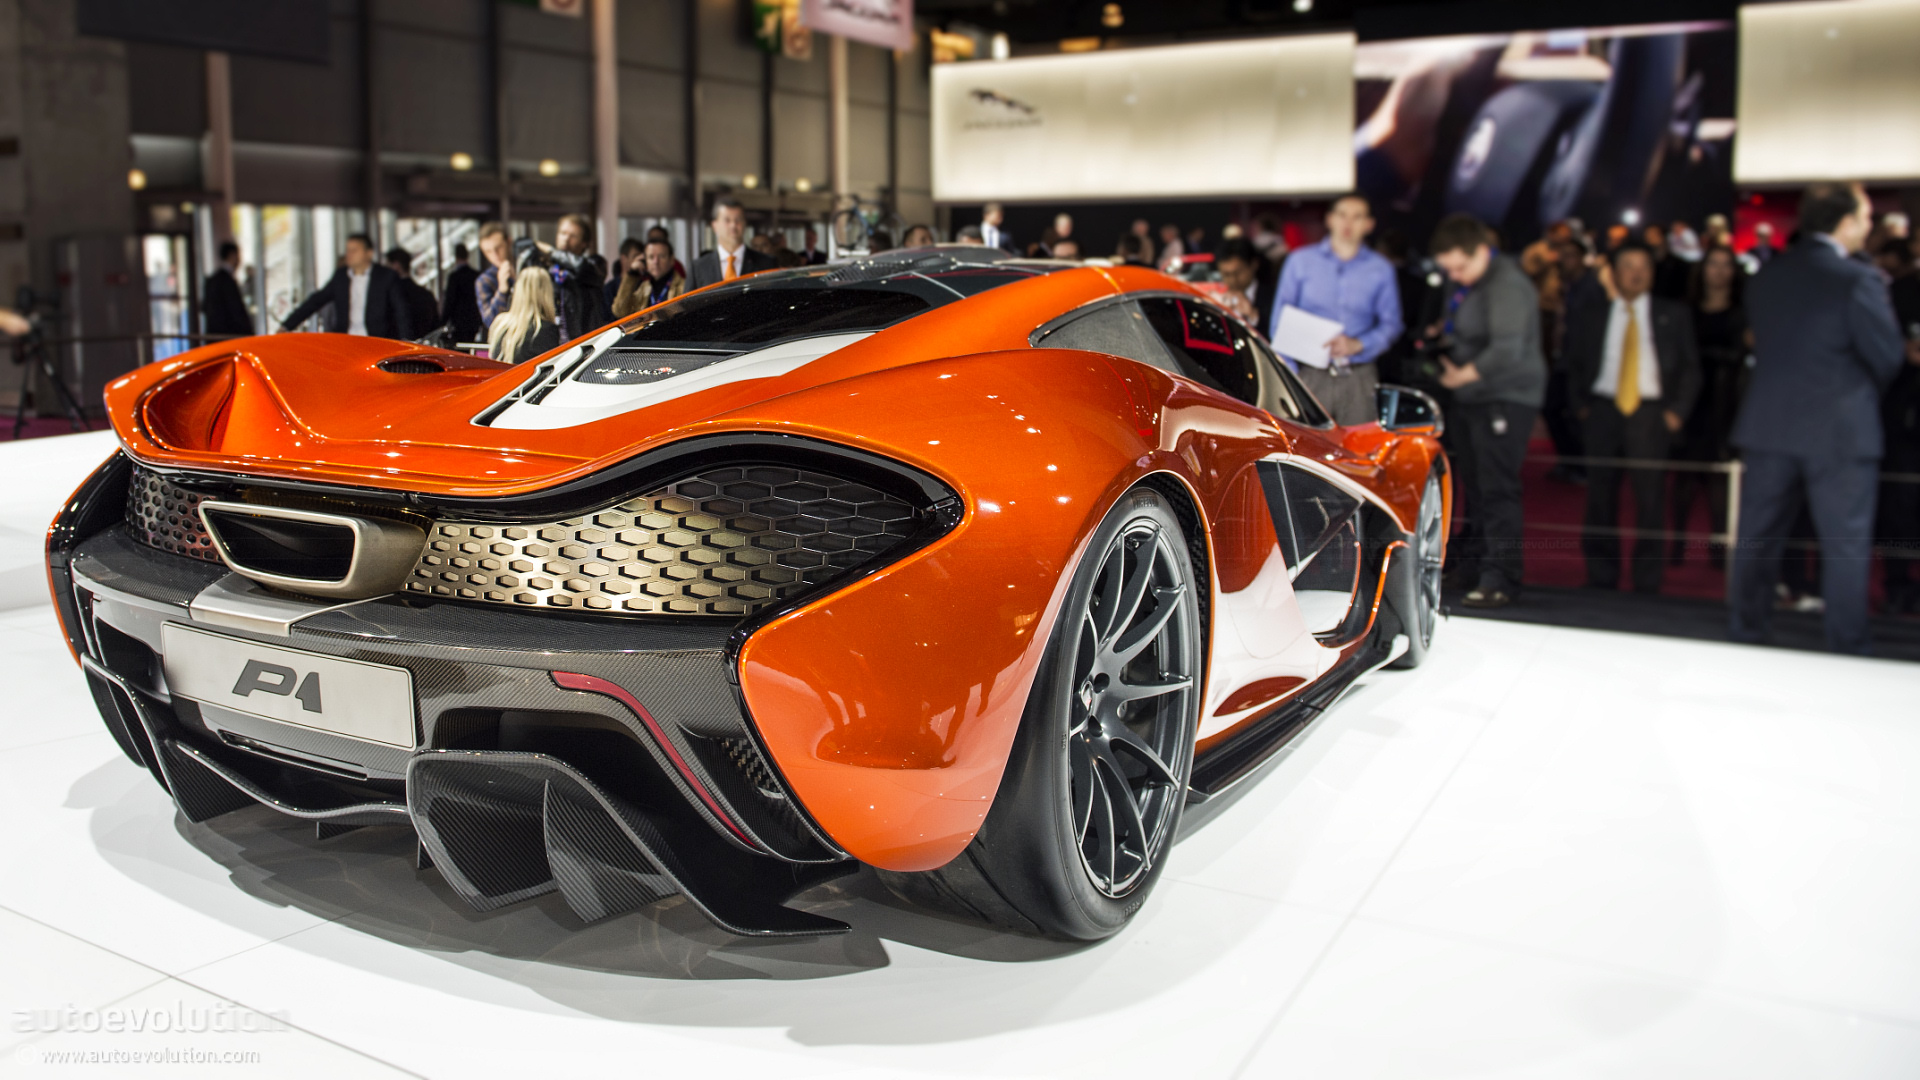 Paris Mclaren Hypercar Concept Live Photos Autoevolution